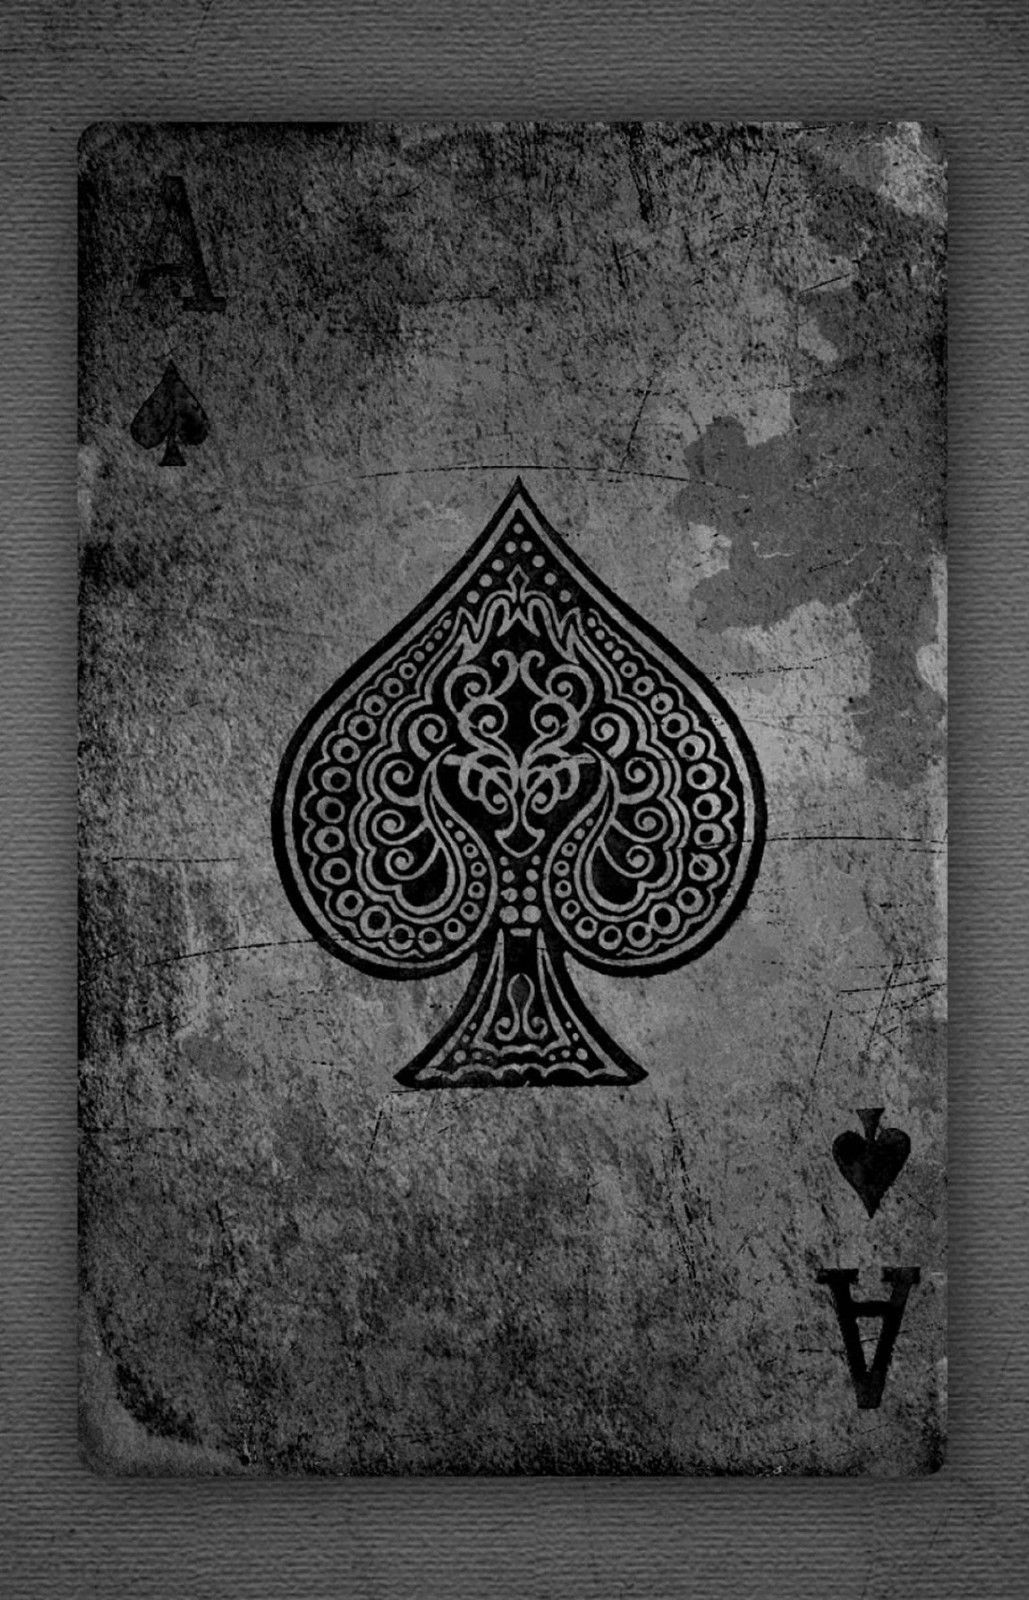 spade card background  A6 Poster - Black and White Vintage Ace of Spades Playing ...